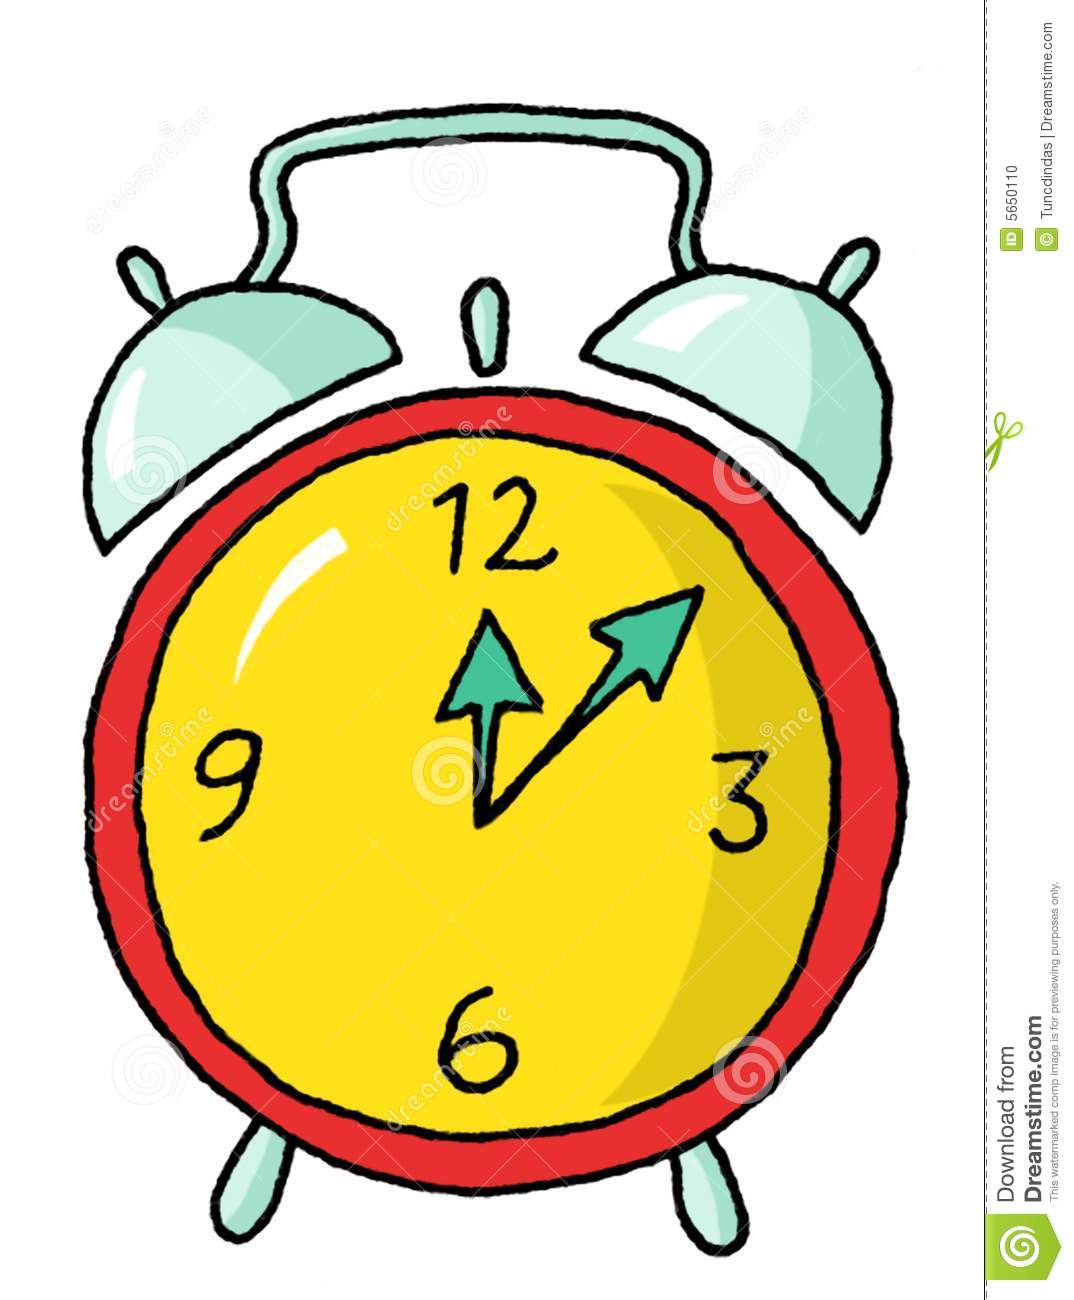 Be on time clipart image freeuse library Time Clipart & Look At Clip Art Images - ClipartLook image freeuse library